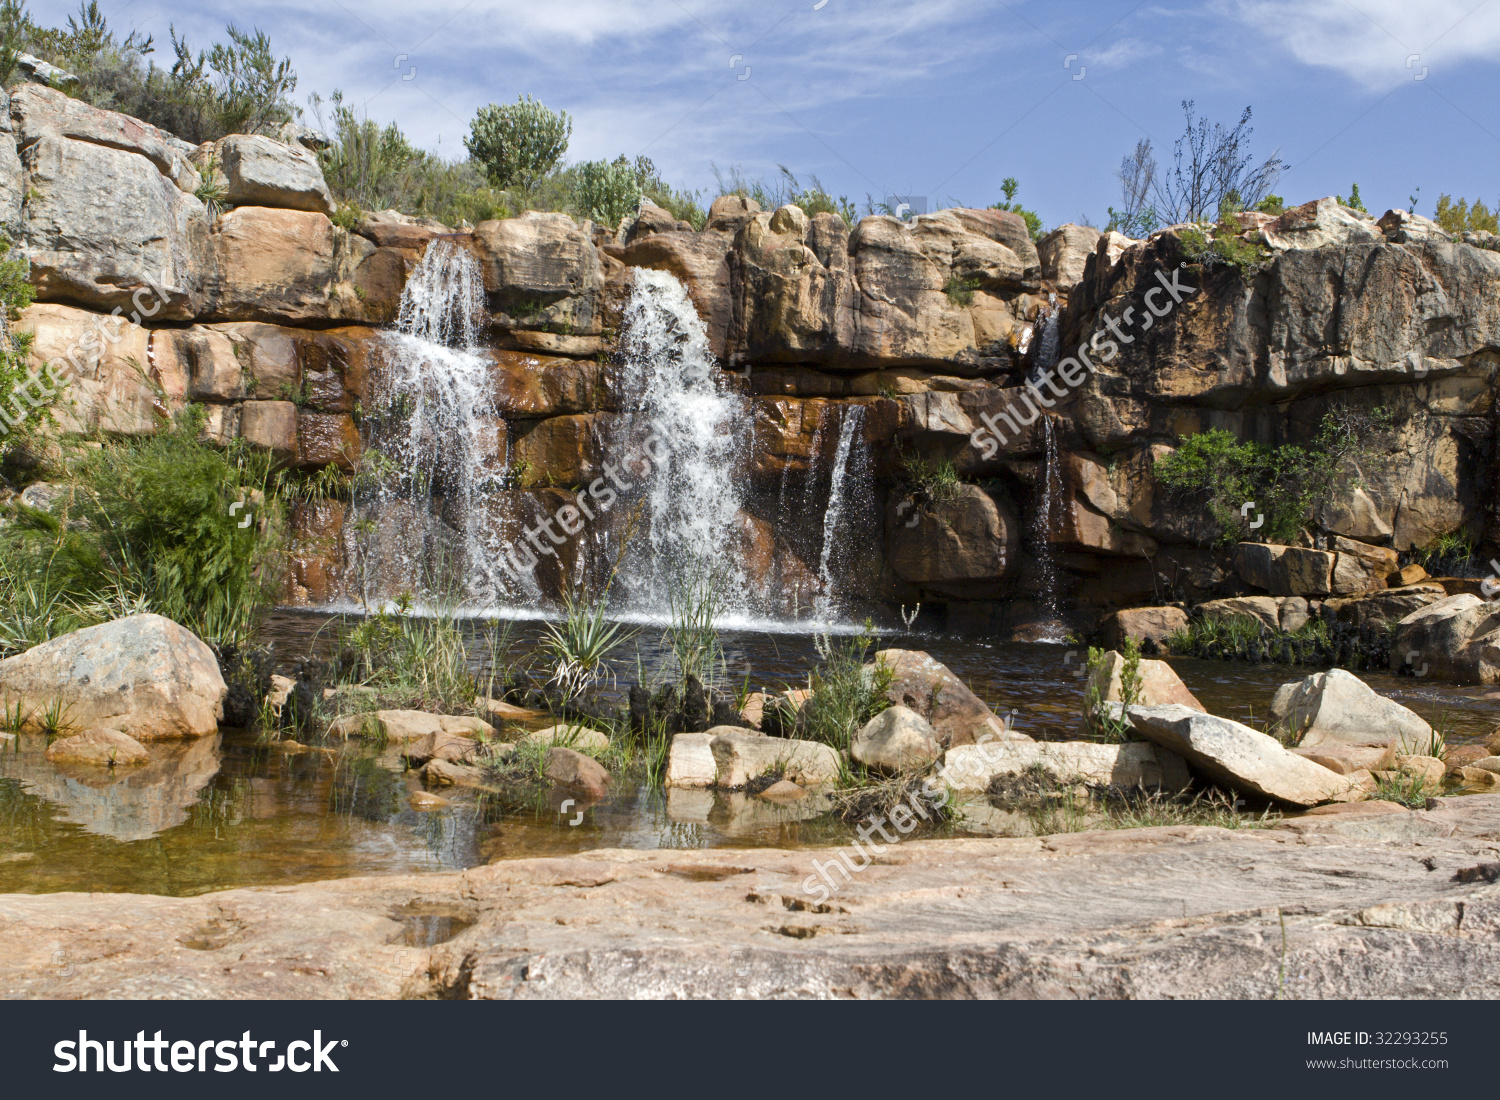 A Waterfall At Beaverlac In The Cederberg Mountains On The Farm.